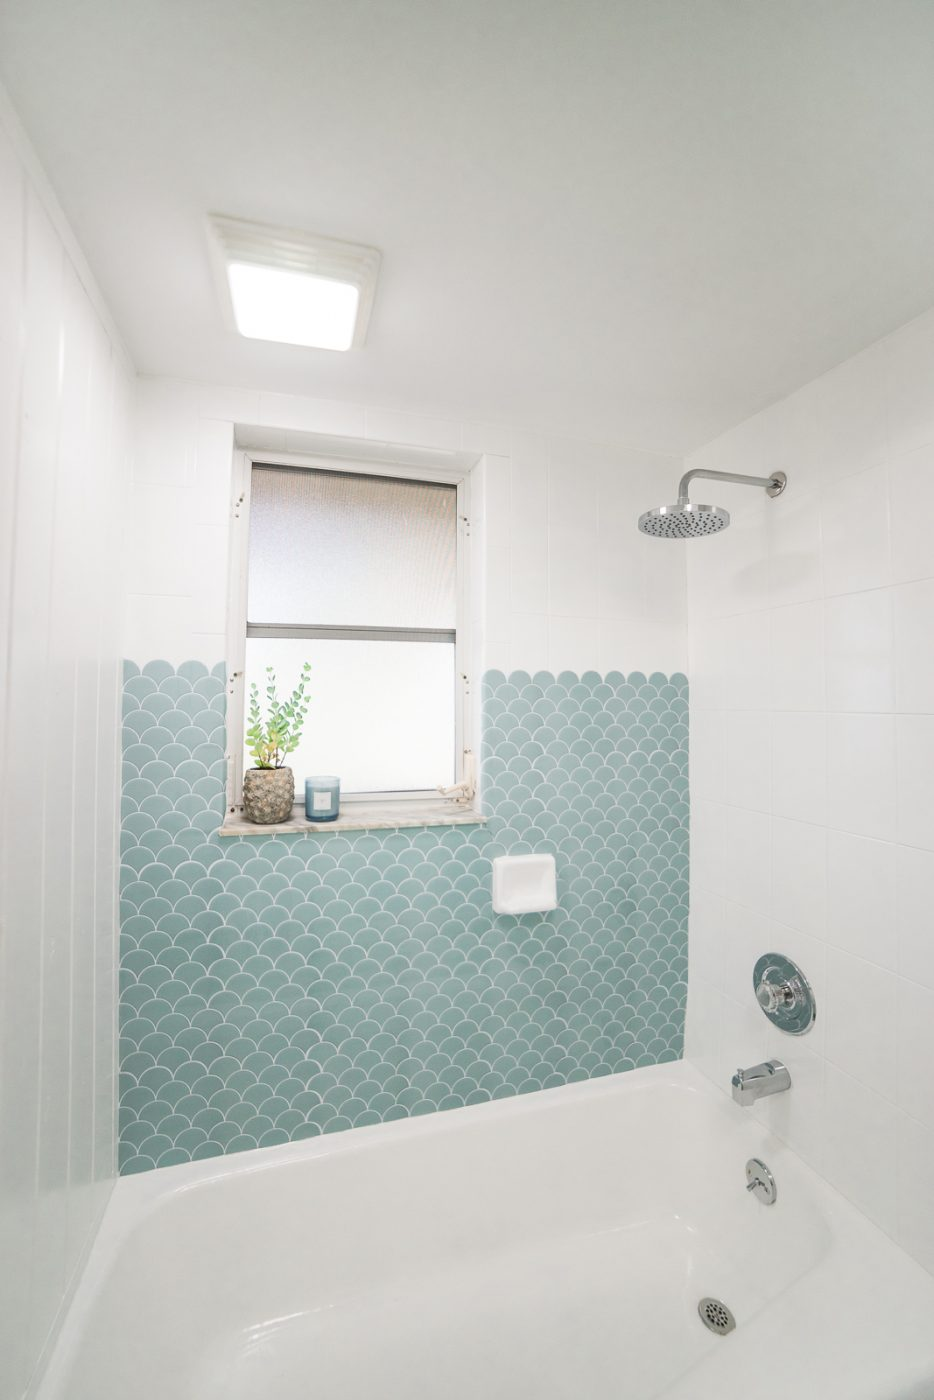 How To Paint A Bathtub And Shower For, Can You Paint Over Bathroom Tile In The Shower